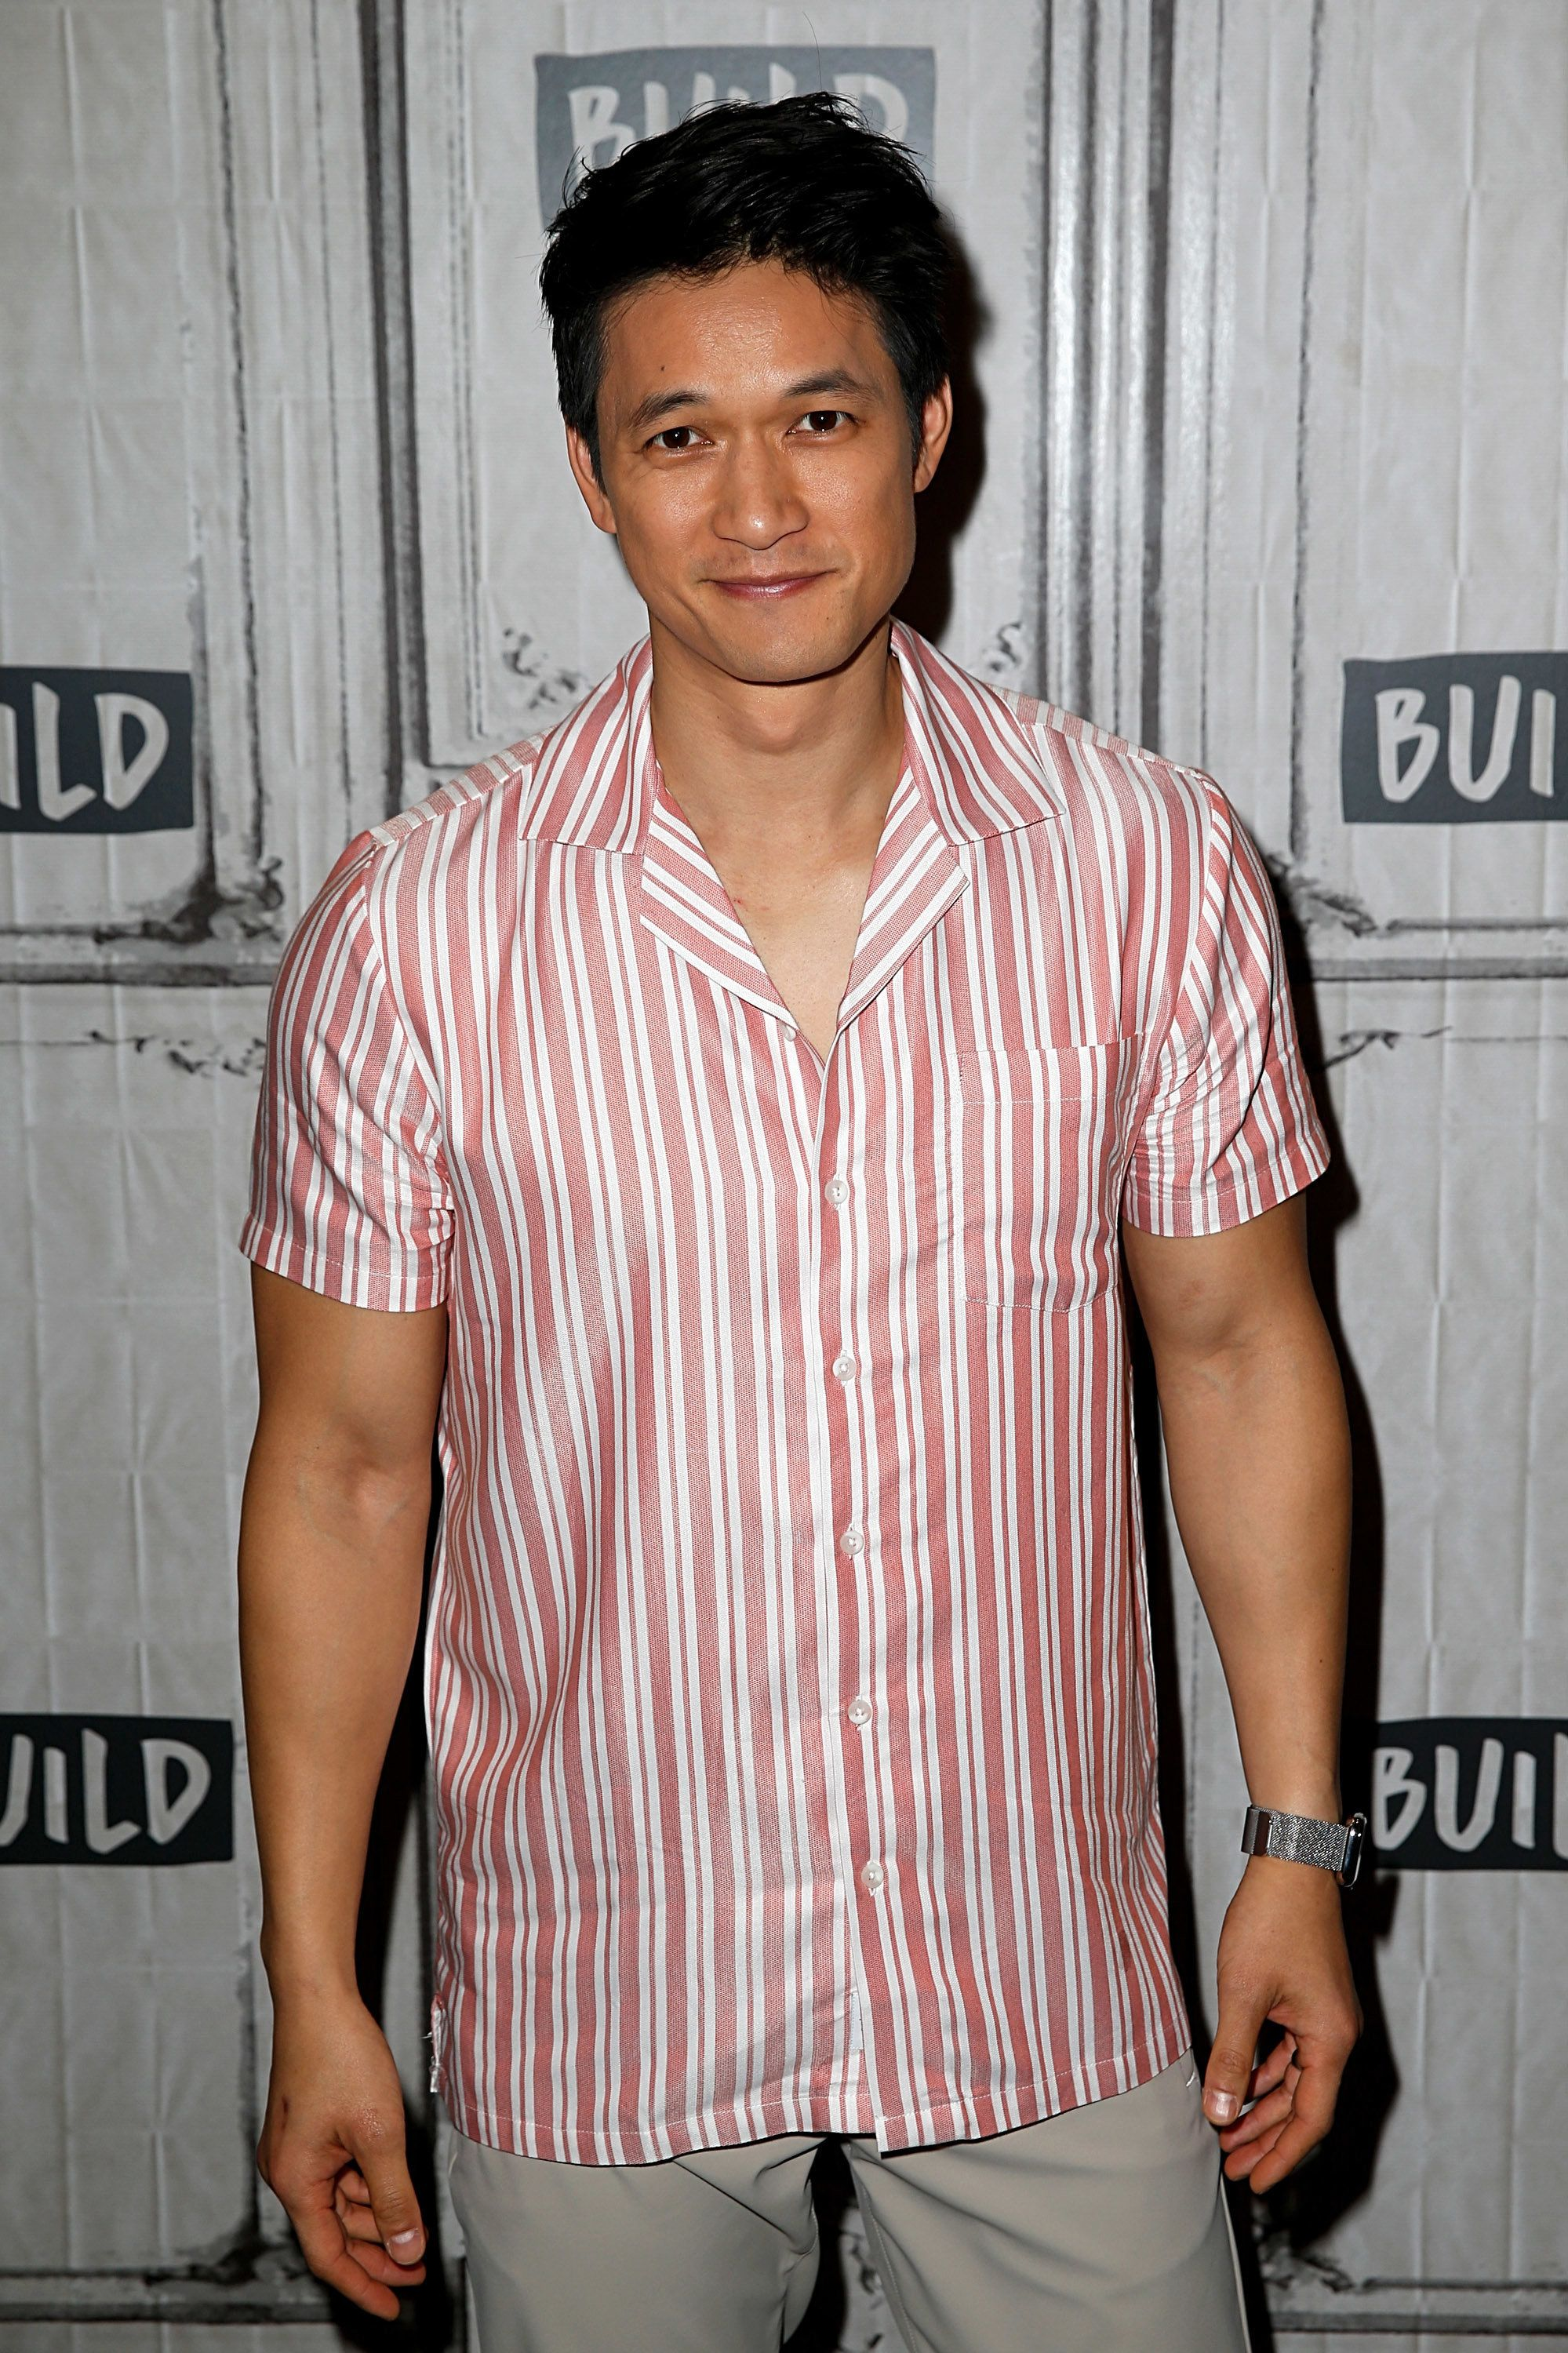 NEW YORK, NEW YORK - FEBRUARY 25: Harry Shum Jr. attends Build Series to discuss 'Shadowhunters' at Build Studio on February 25, 2019 in New York City. (Photo by Dominik Bindl/WireImage)